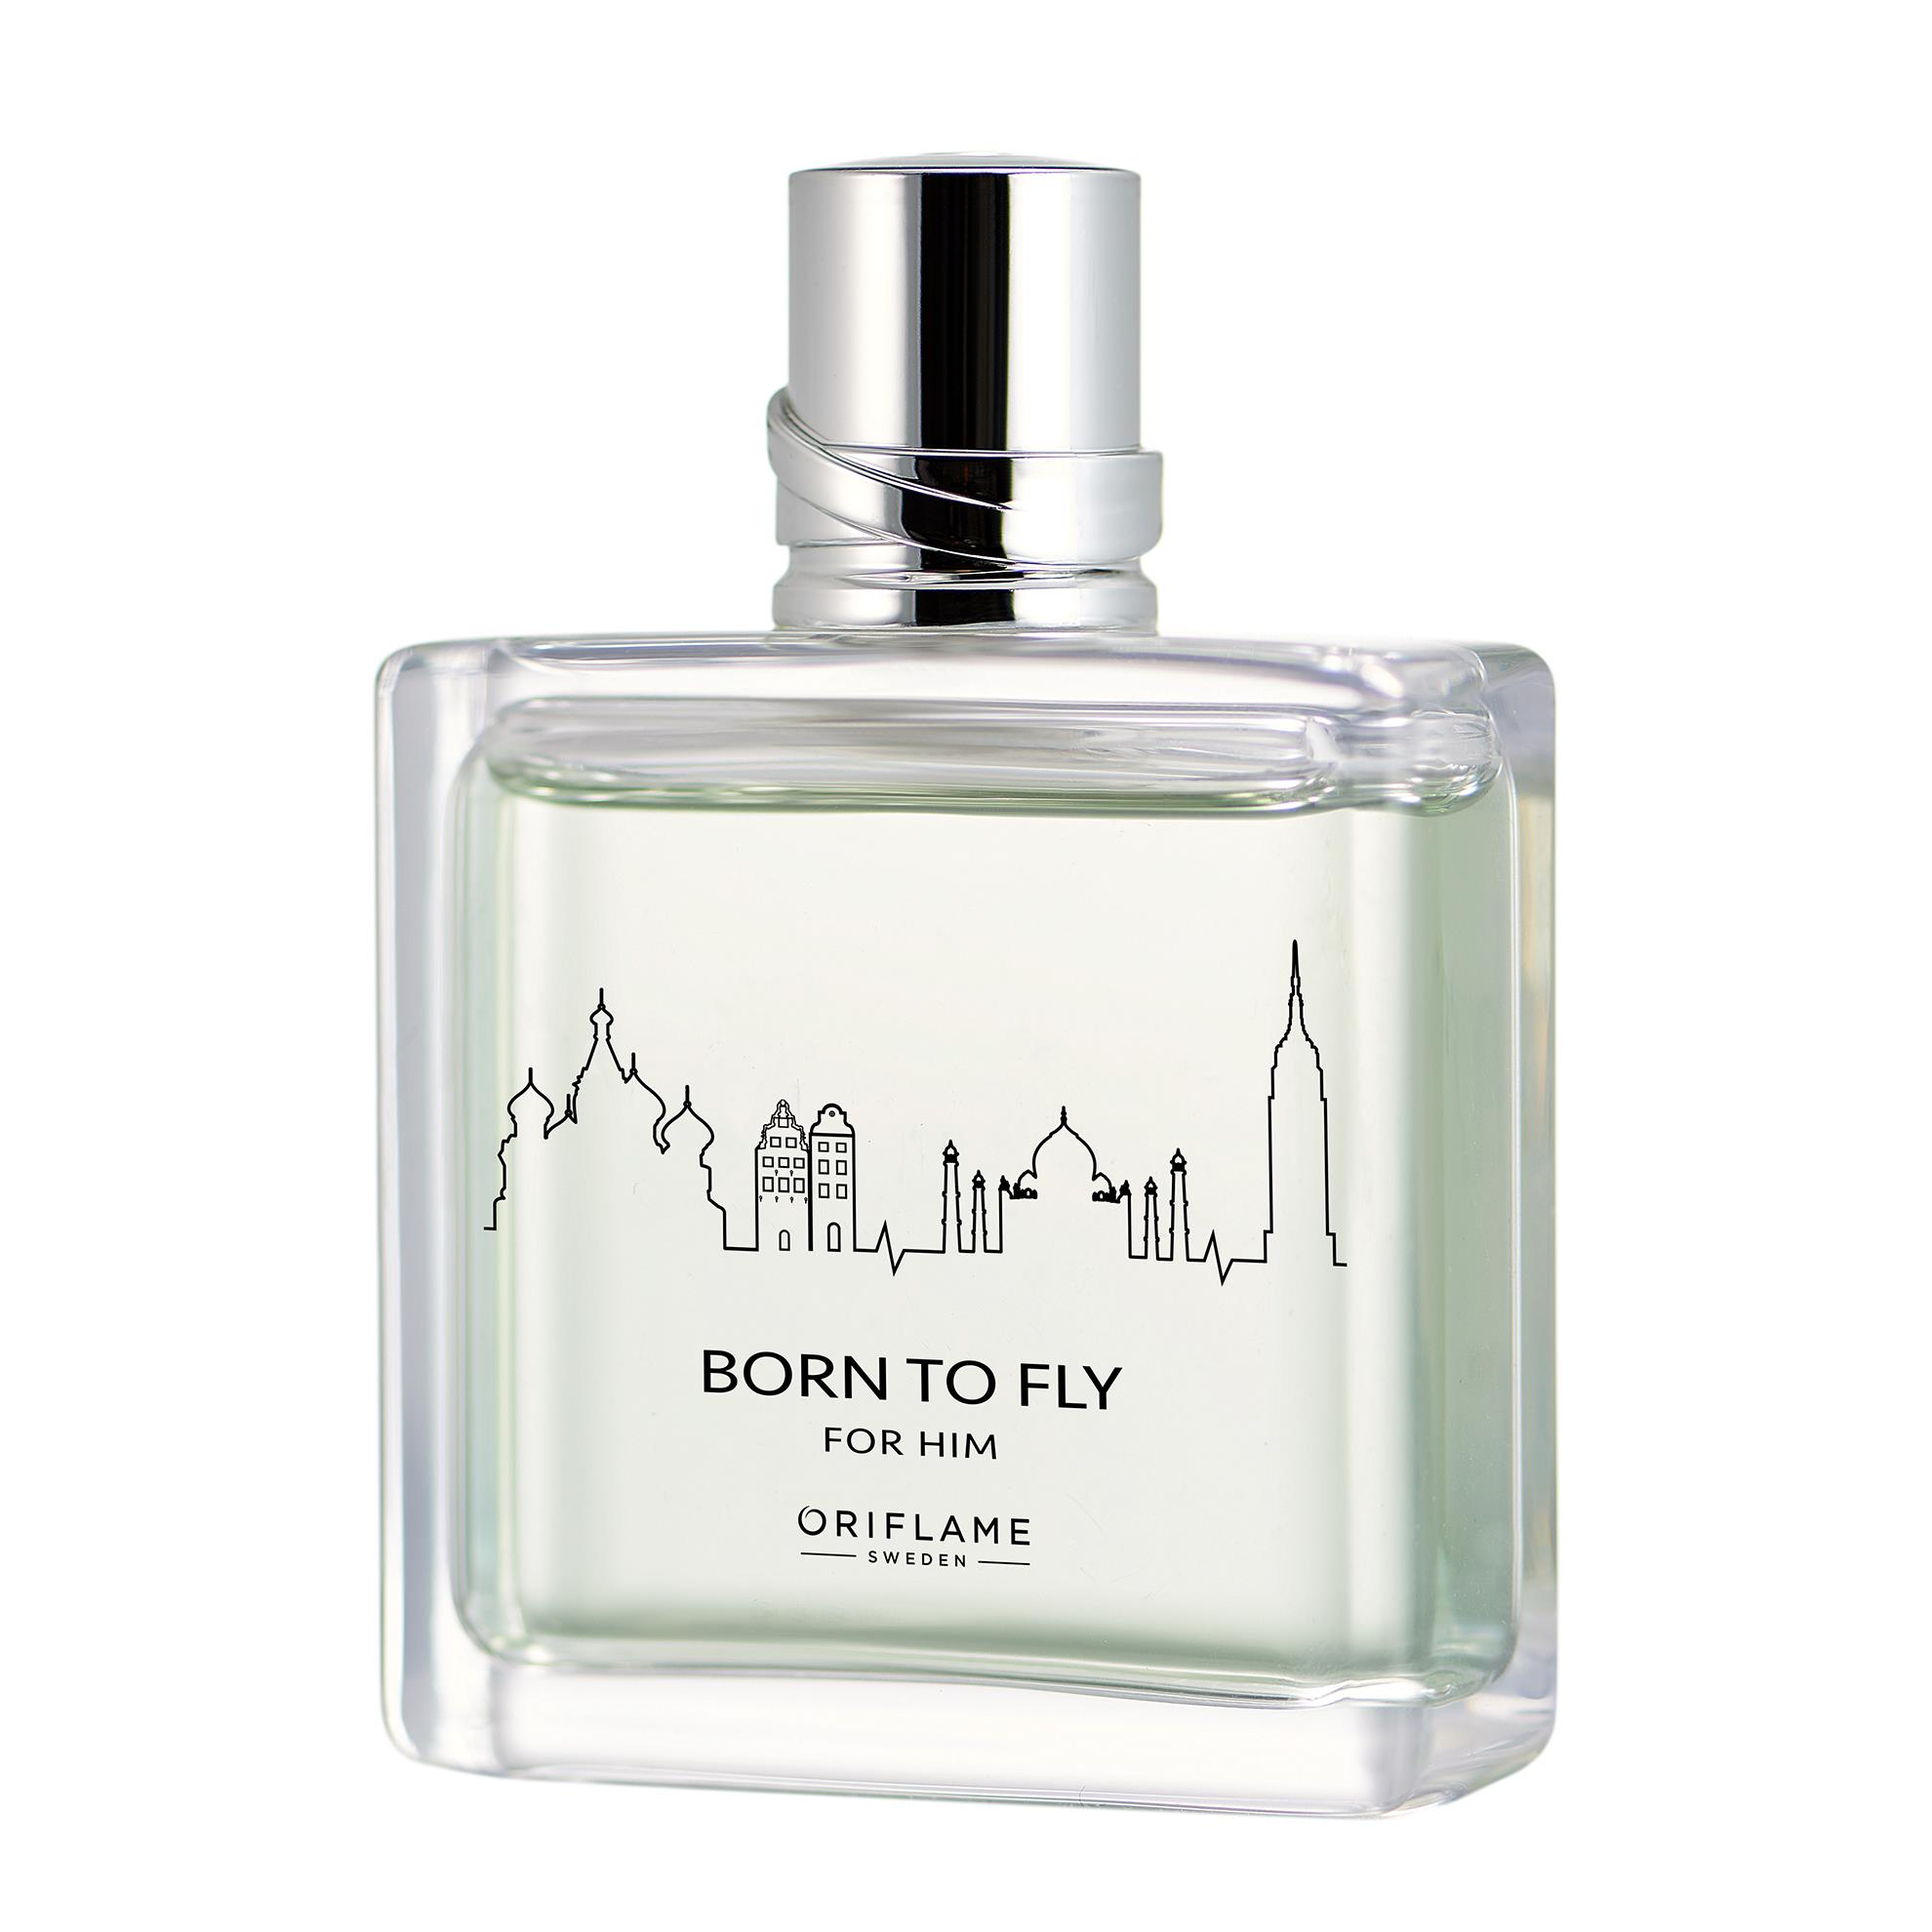 Take fight with this exhilarating eau de toilette that invites you to explore. A daring accord - inspired by Mexican Agave Nectar, aromatic Clary Sage and Lavandin fields in France and Yuzu gardens in Japan - blends to lift your spirit and takes you on a journey.